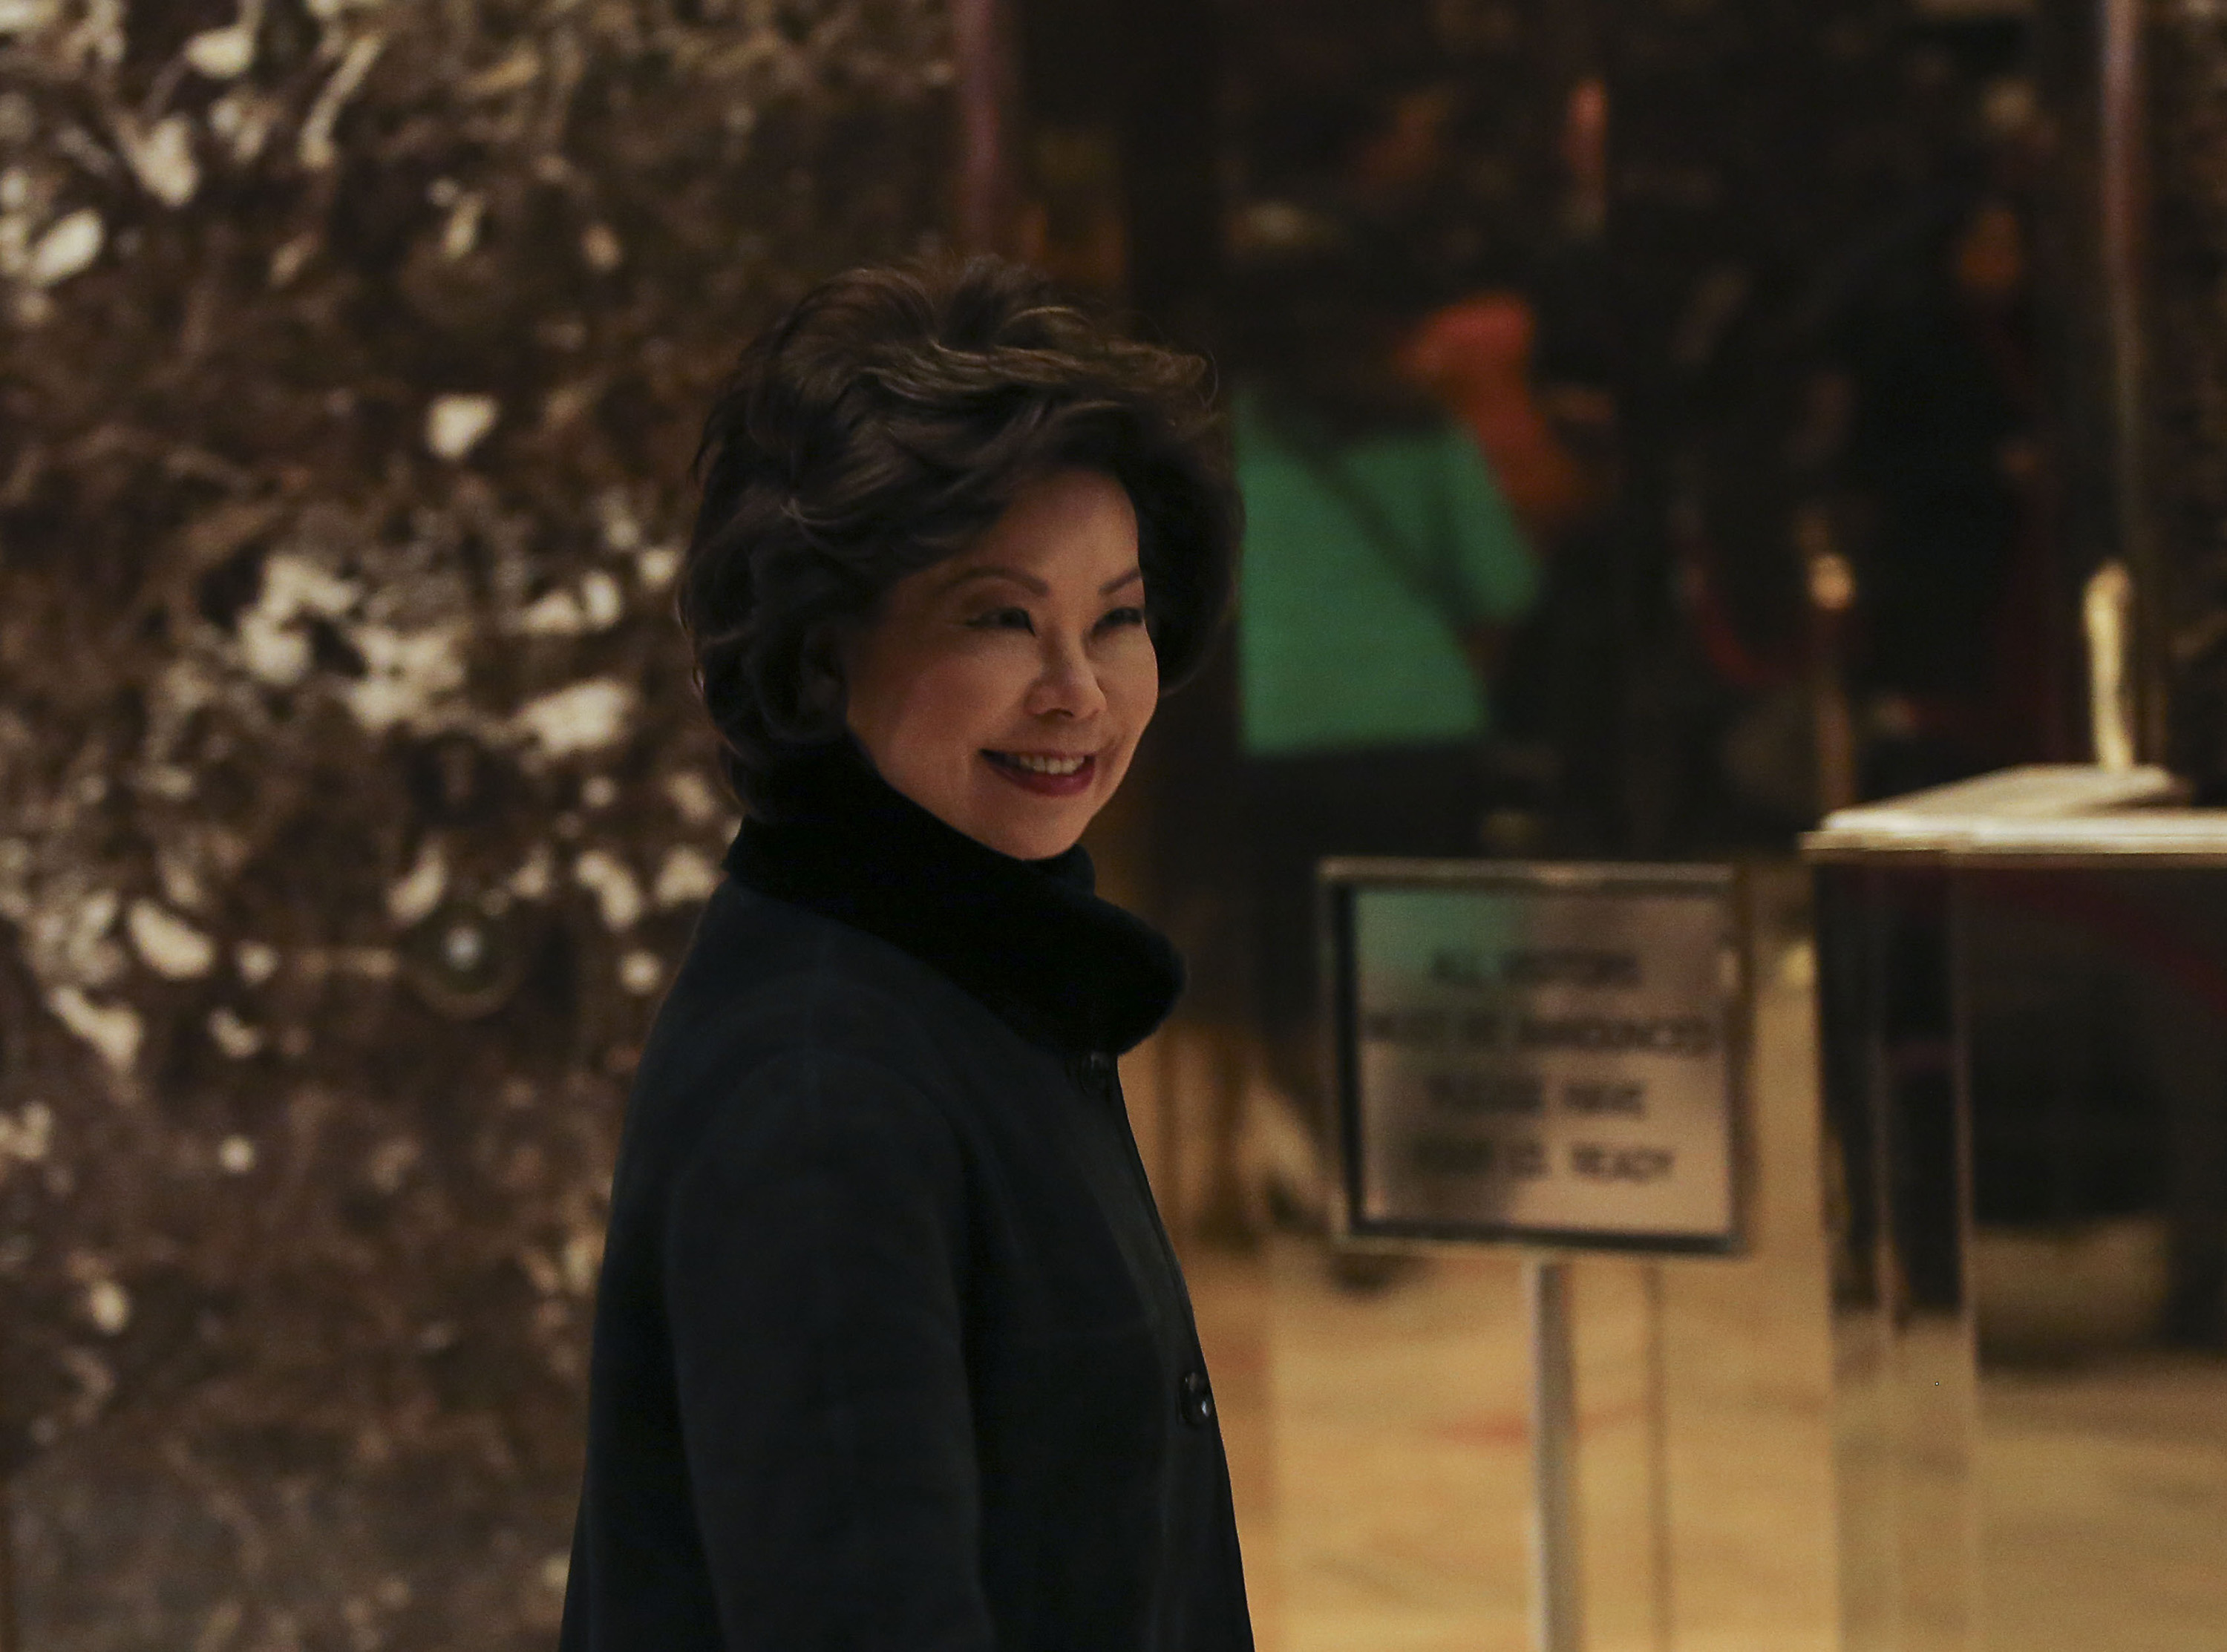 Former US Secretary Elaine Chao arrives for a meeting with President elect Donald Trump, in the Trump Tower on Nov. 21 in New York. (Aude Guerrucci/Sipa USA/TNS)